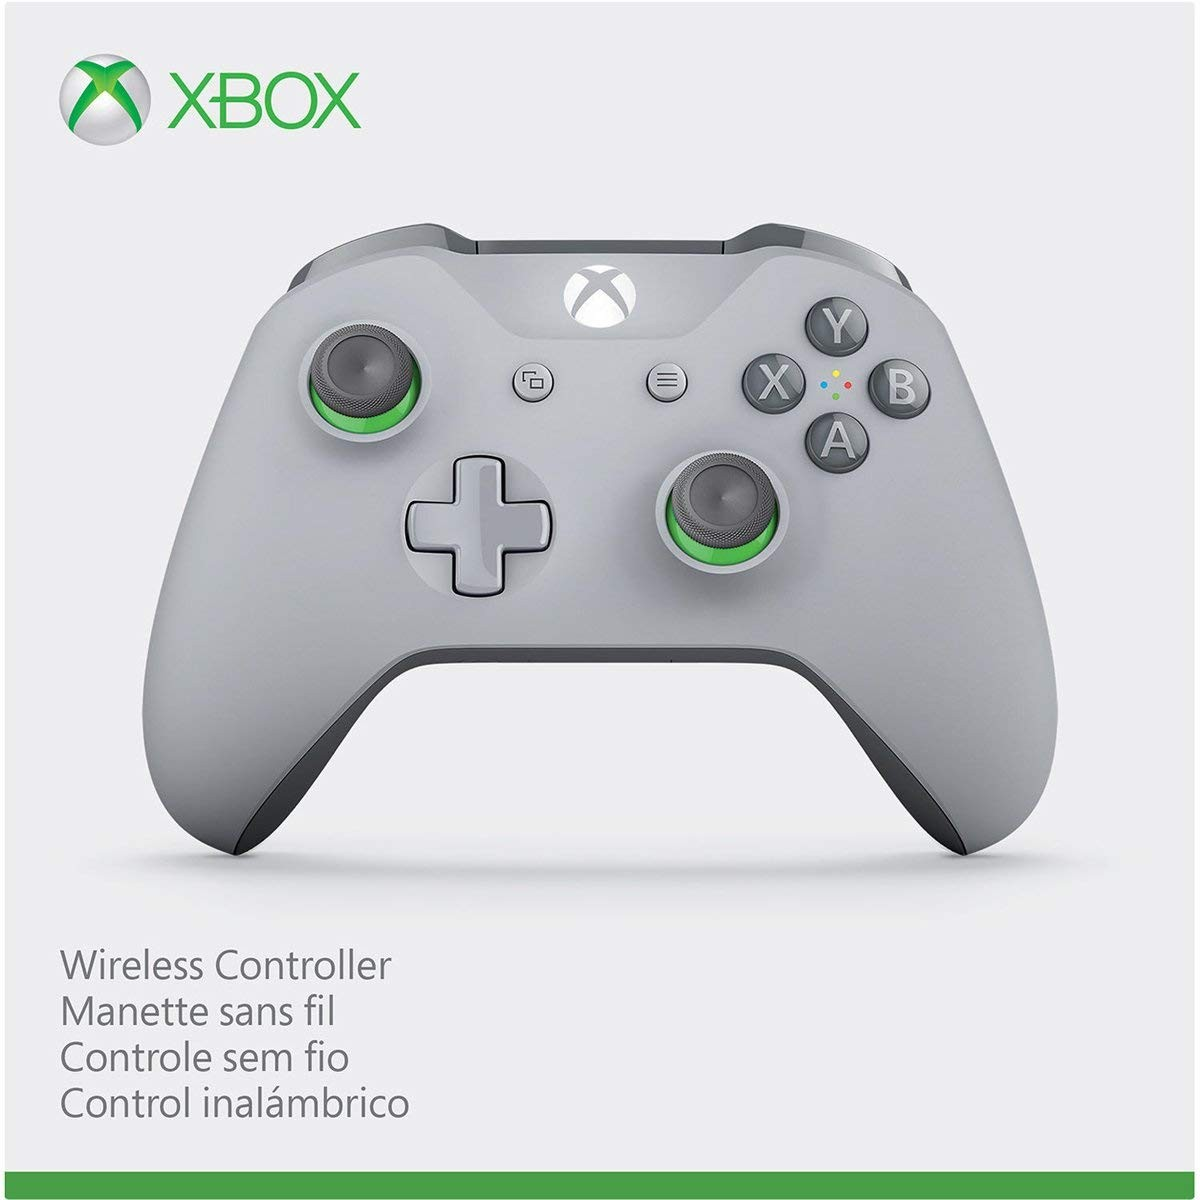 Бездротовий контролер/джойстик/геймпад Xbox ONE Wireless Controller Grey/Green (сiрий/зелений)